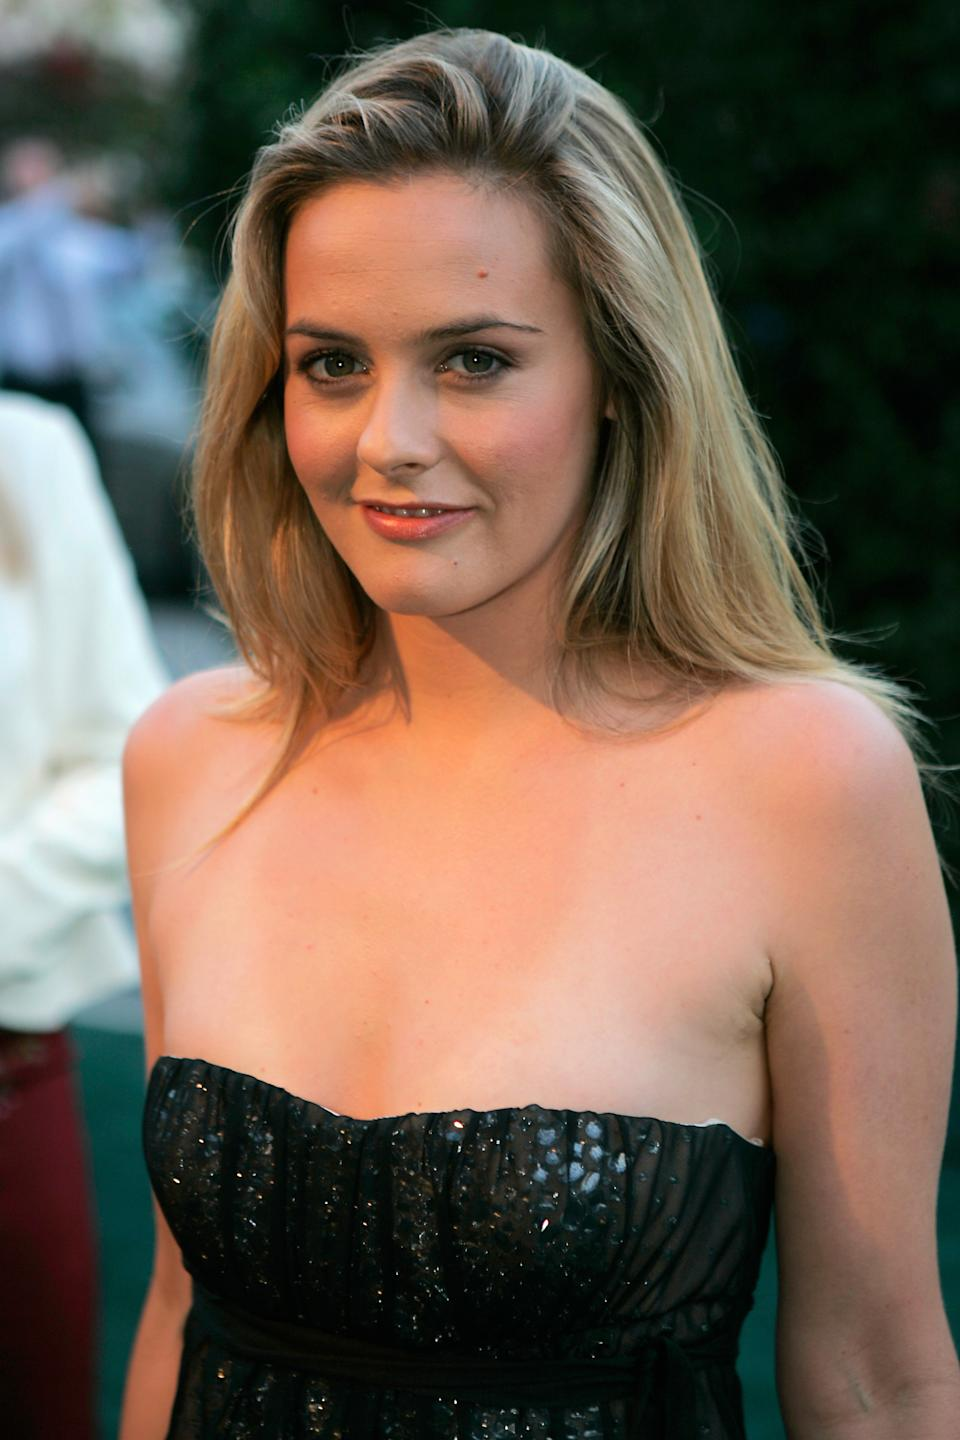 Alicia Silverstone poses as she arrives at the 15th annual Environmental Media Awards in Los Angeles October 19, 2005. REUTERS/Max Morse